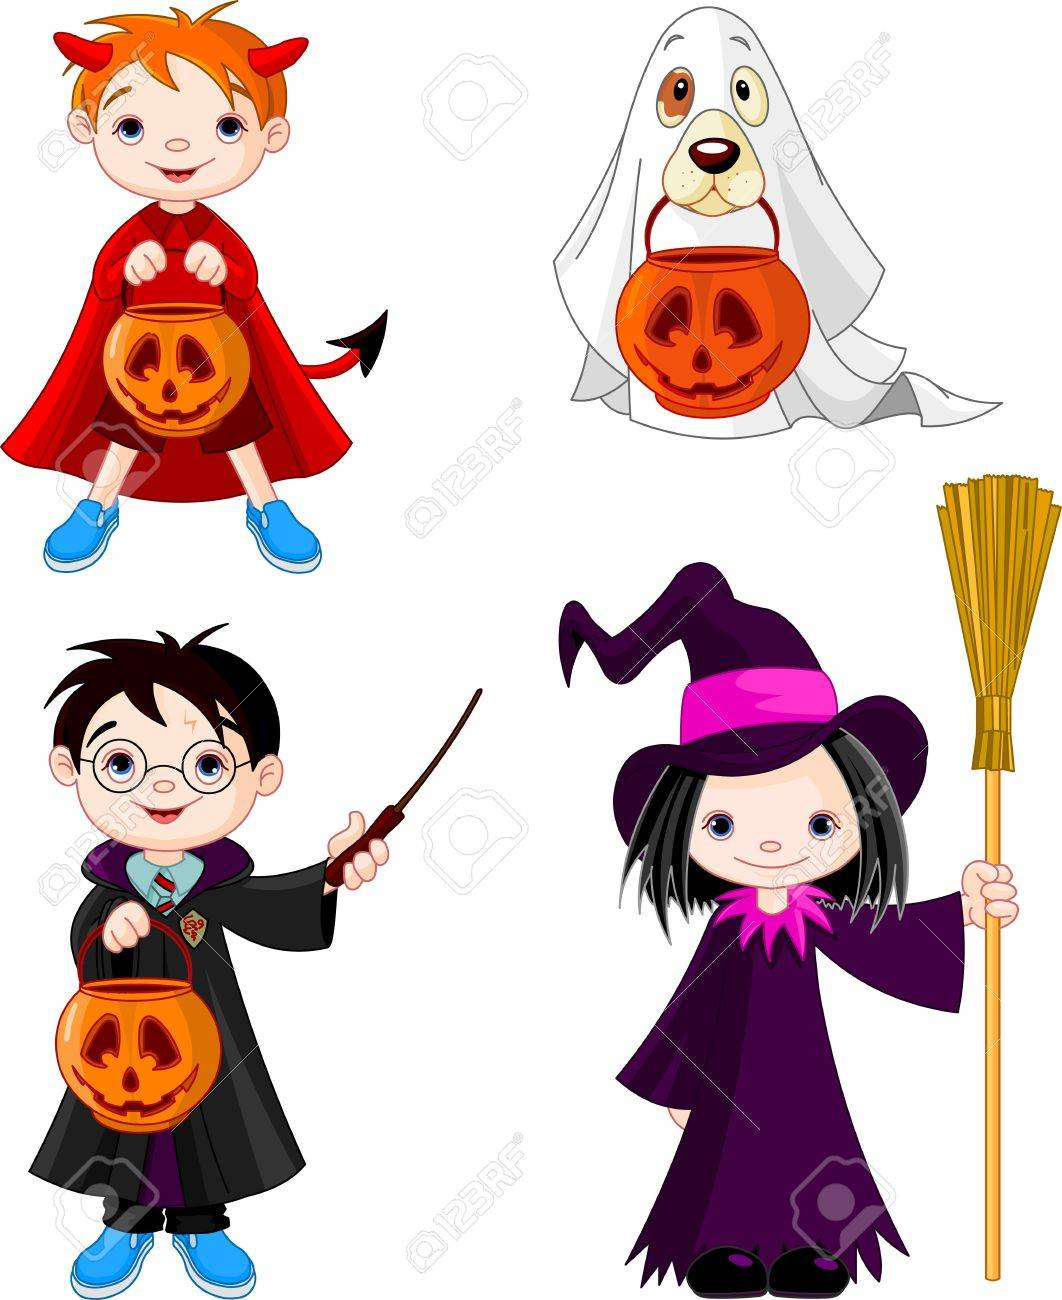 24,889 Halloween Costume Cliparts, Stock Vector And Royalty Free ...